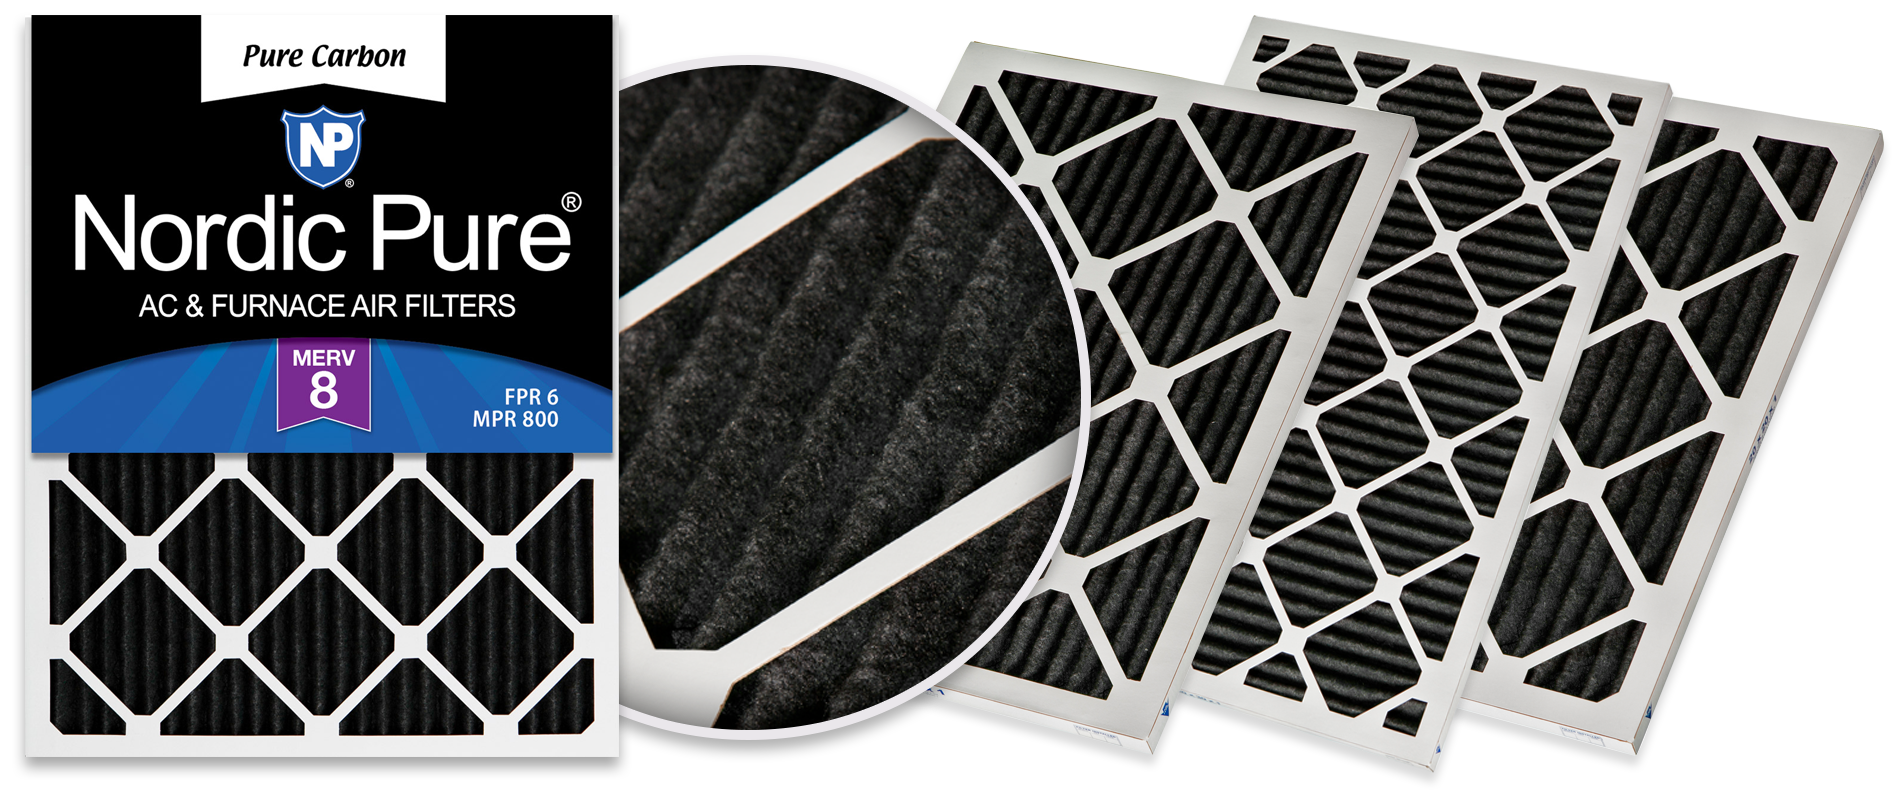 Nordic Pure Pure Carbon Air Filters, MERV 8